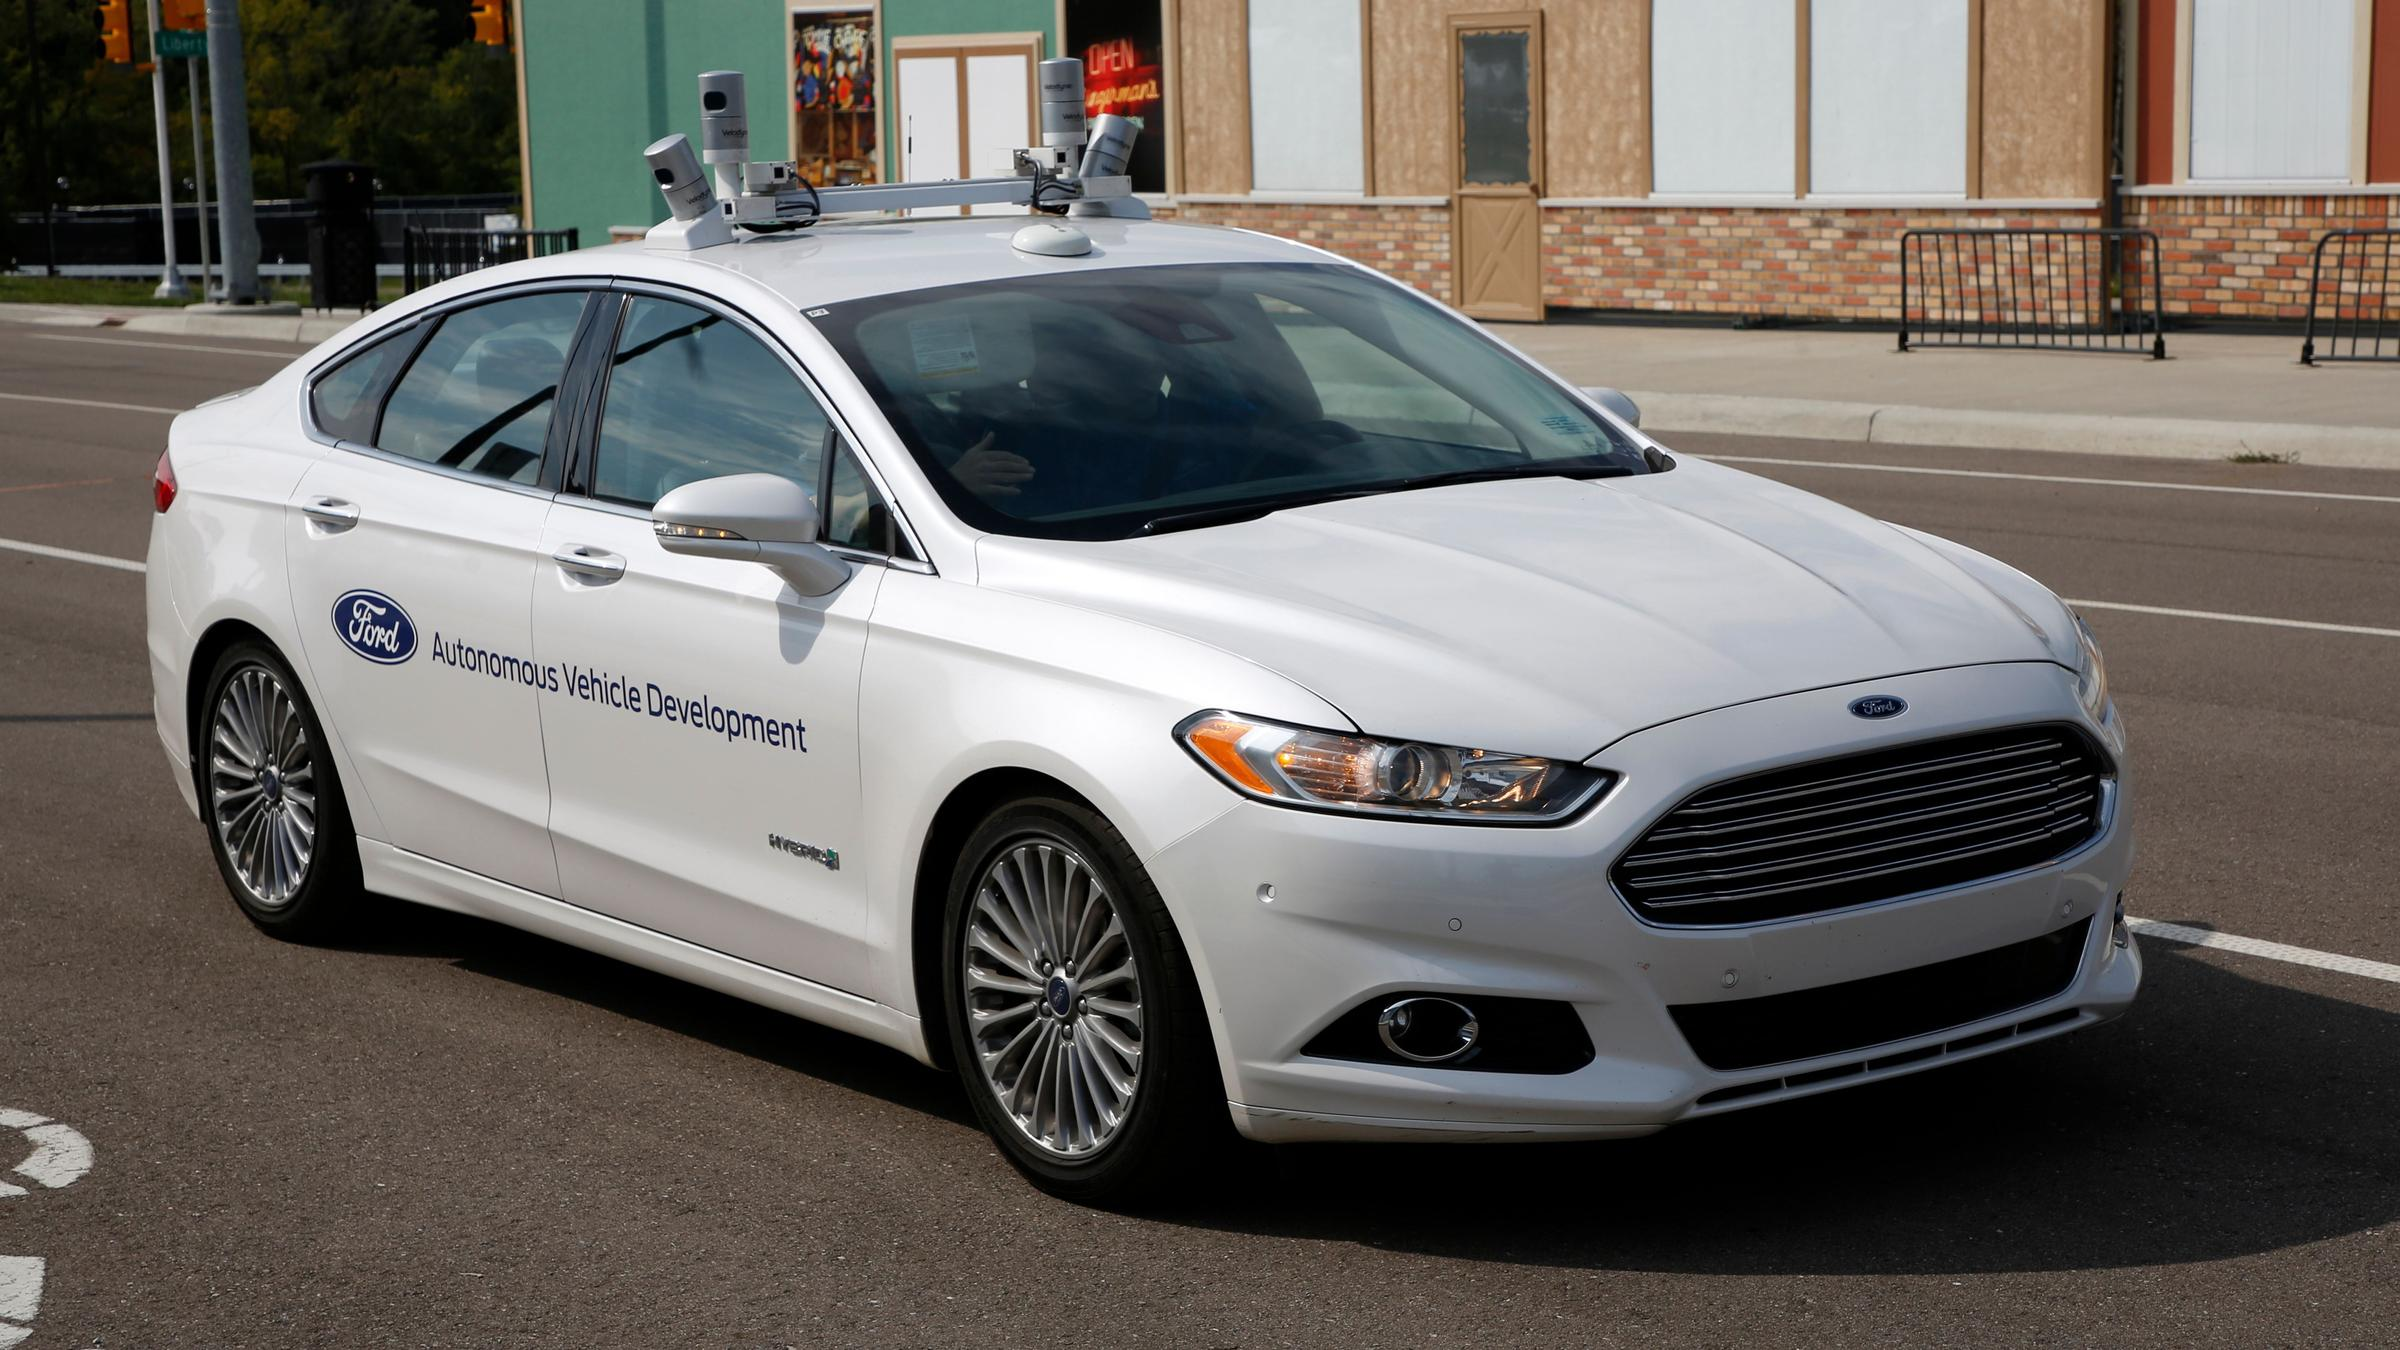 US Transportation Secretary in MI to Announce Self-Driving Vehicle Safetey Guidelines